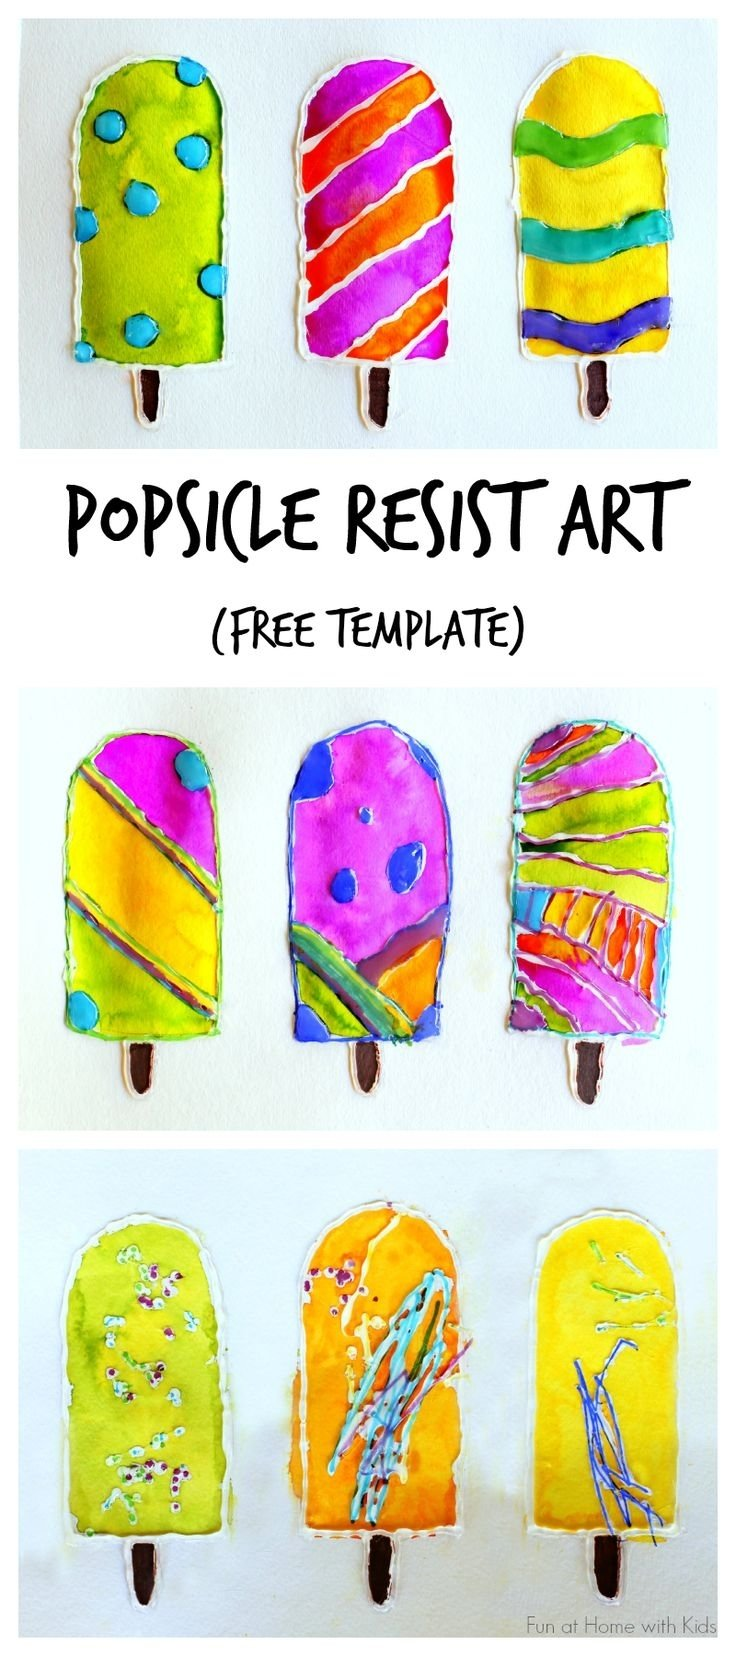 10 Lovable Arts And Crafts Ideas For Summer 109 best spring summer art projects for kids images on pinterest 1